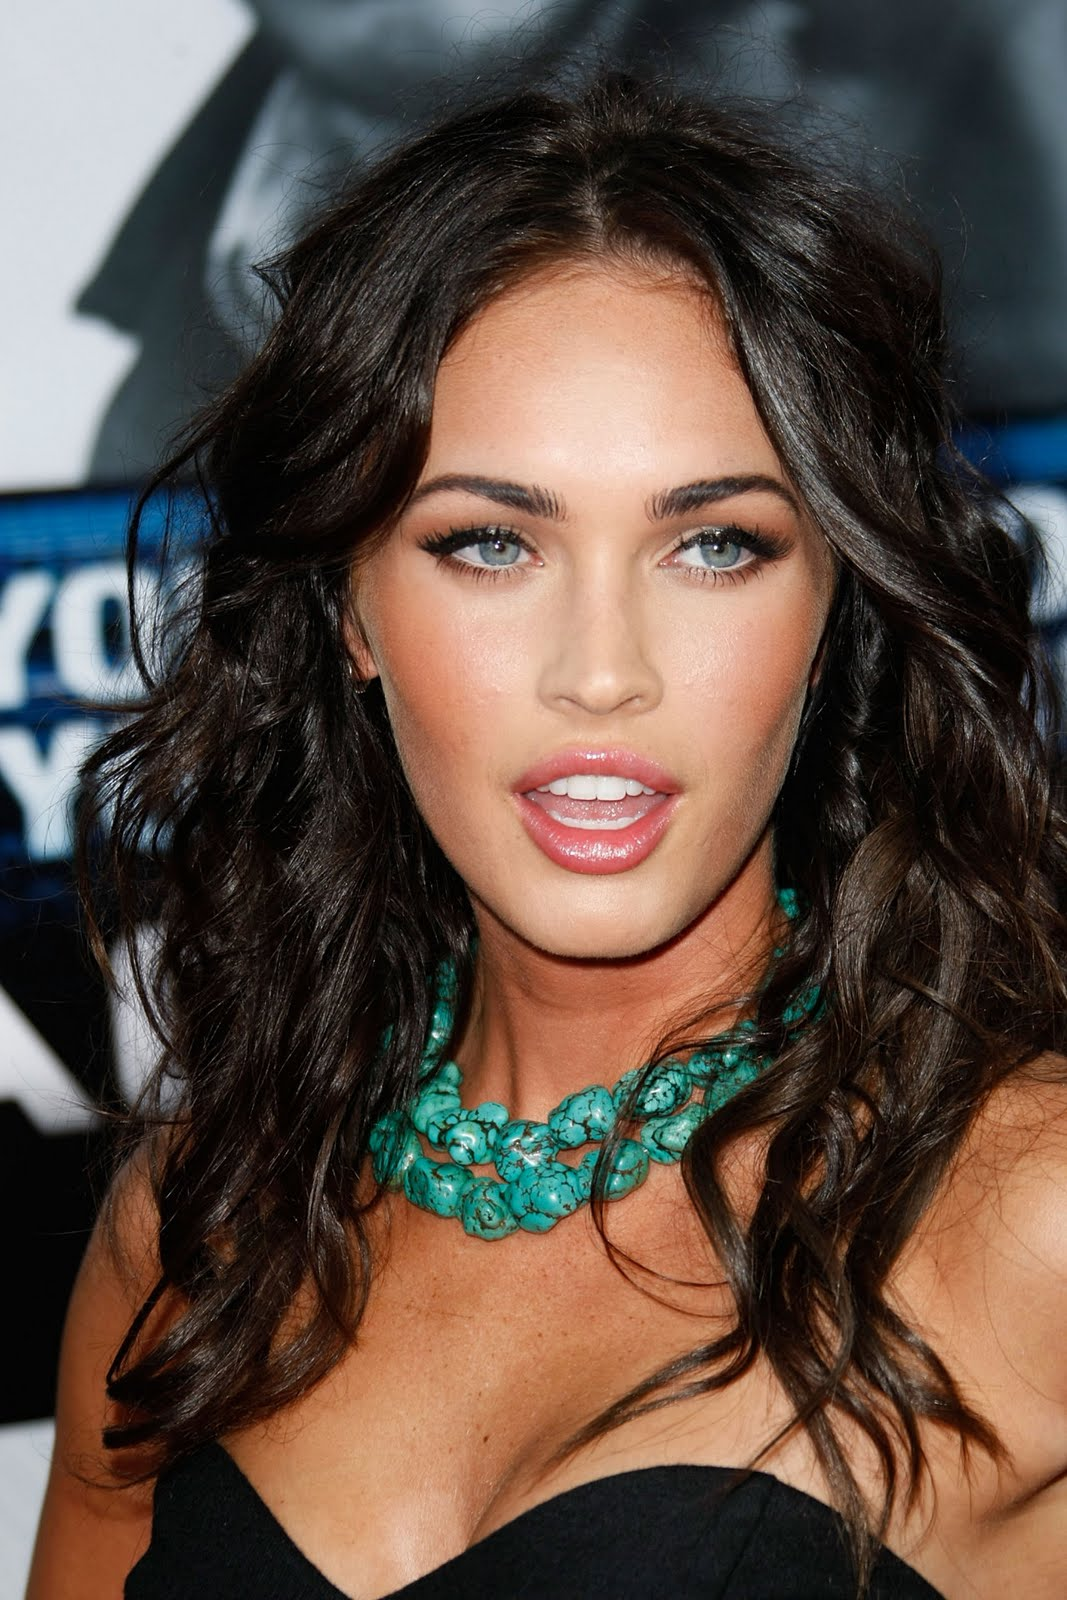 Hollywood Models Wallpapers Megan Fox Spicy Model-3717